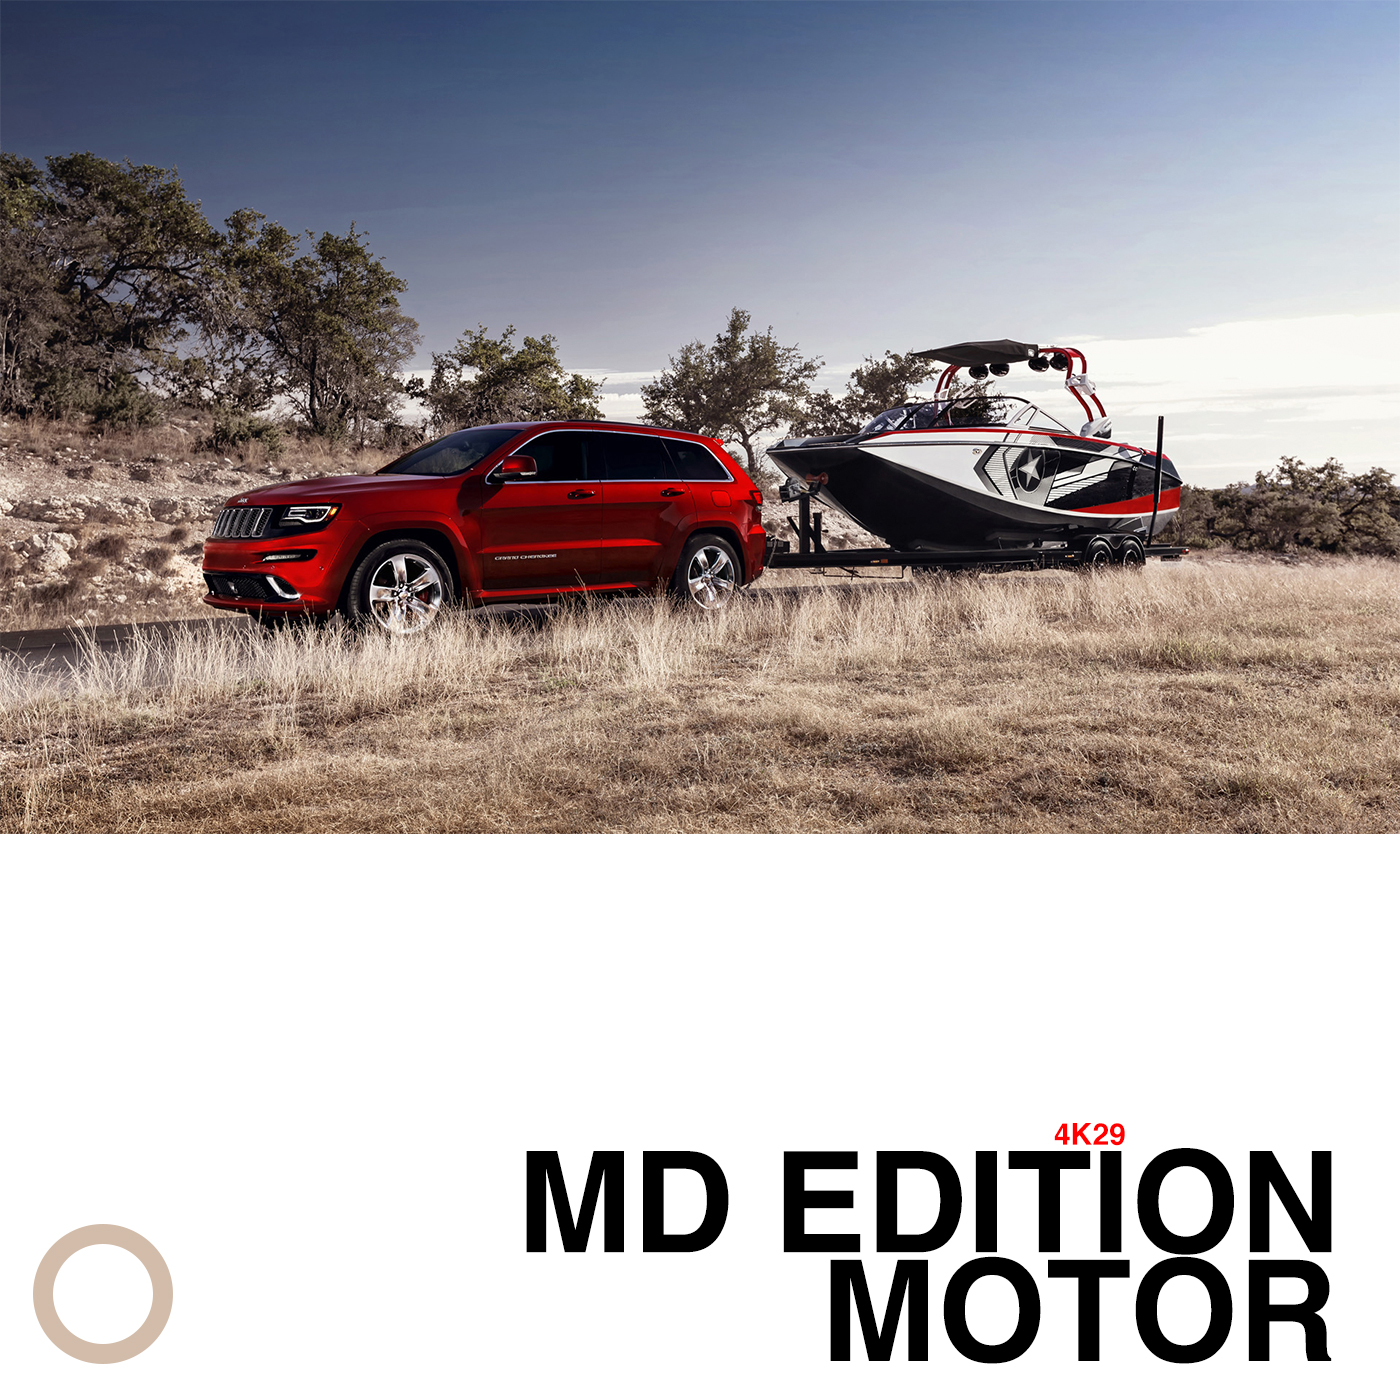 MD EDITION MOTOR 4K29 MOBILE640